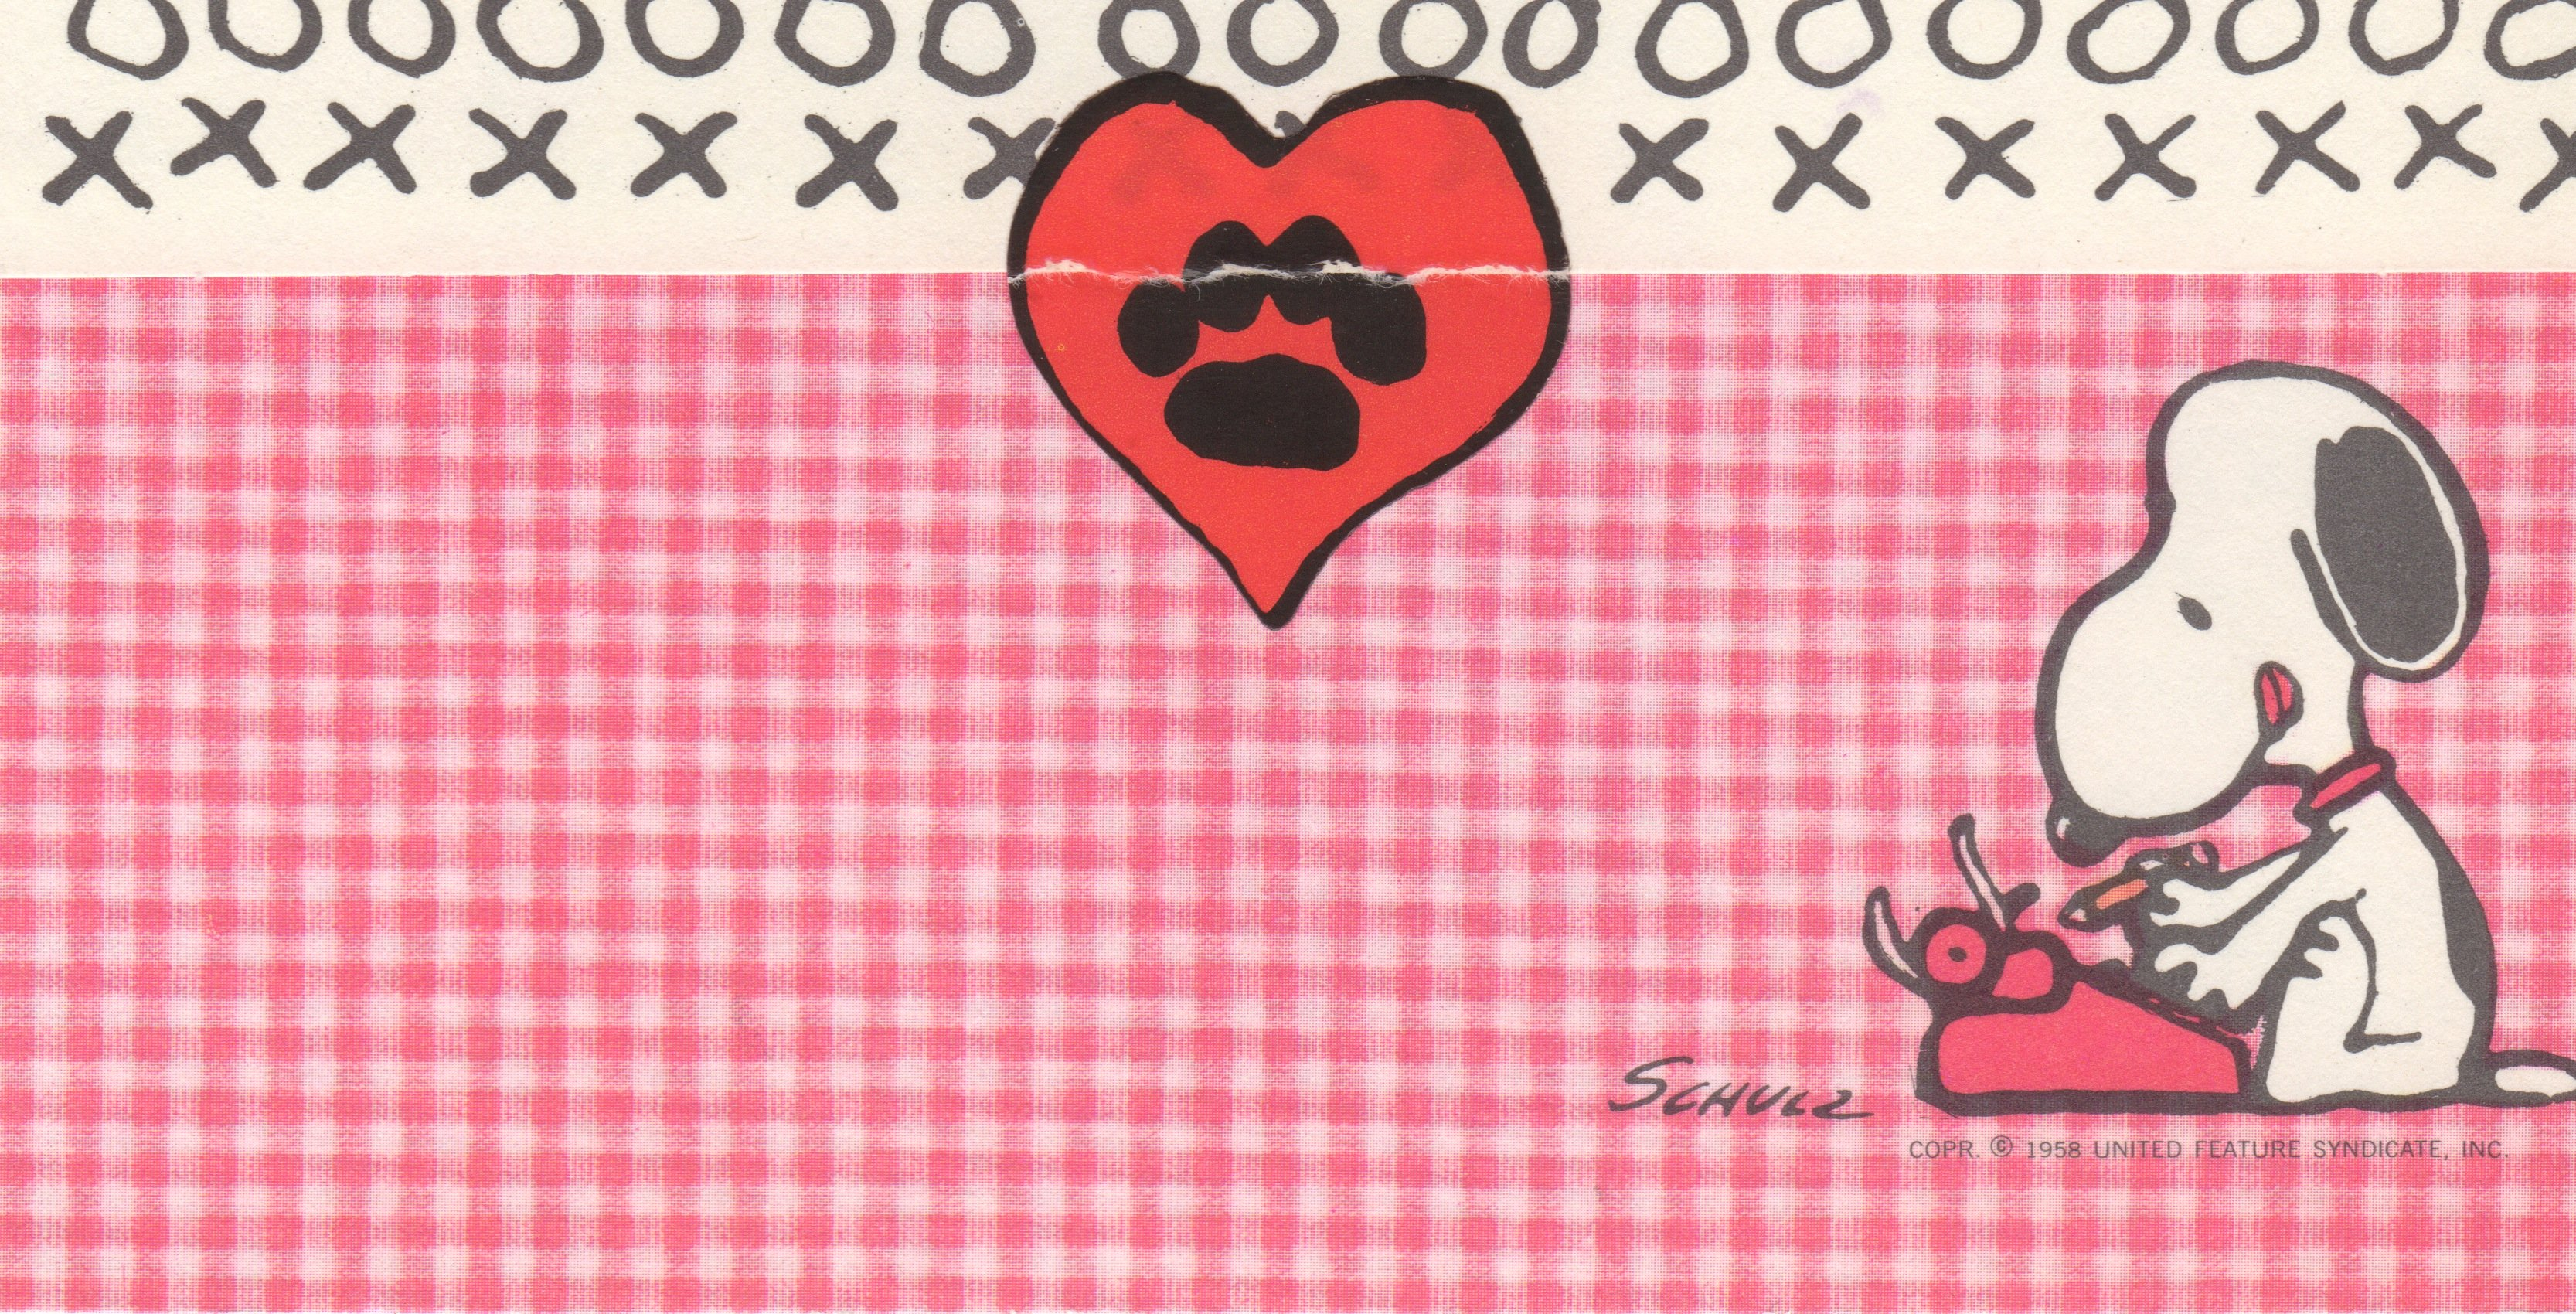 mood love holiday valentine heart snoopy peanuts wallpaper background 3333x1700